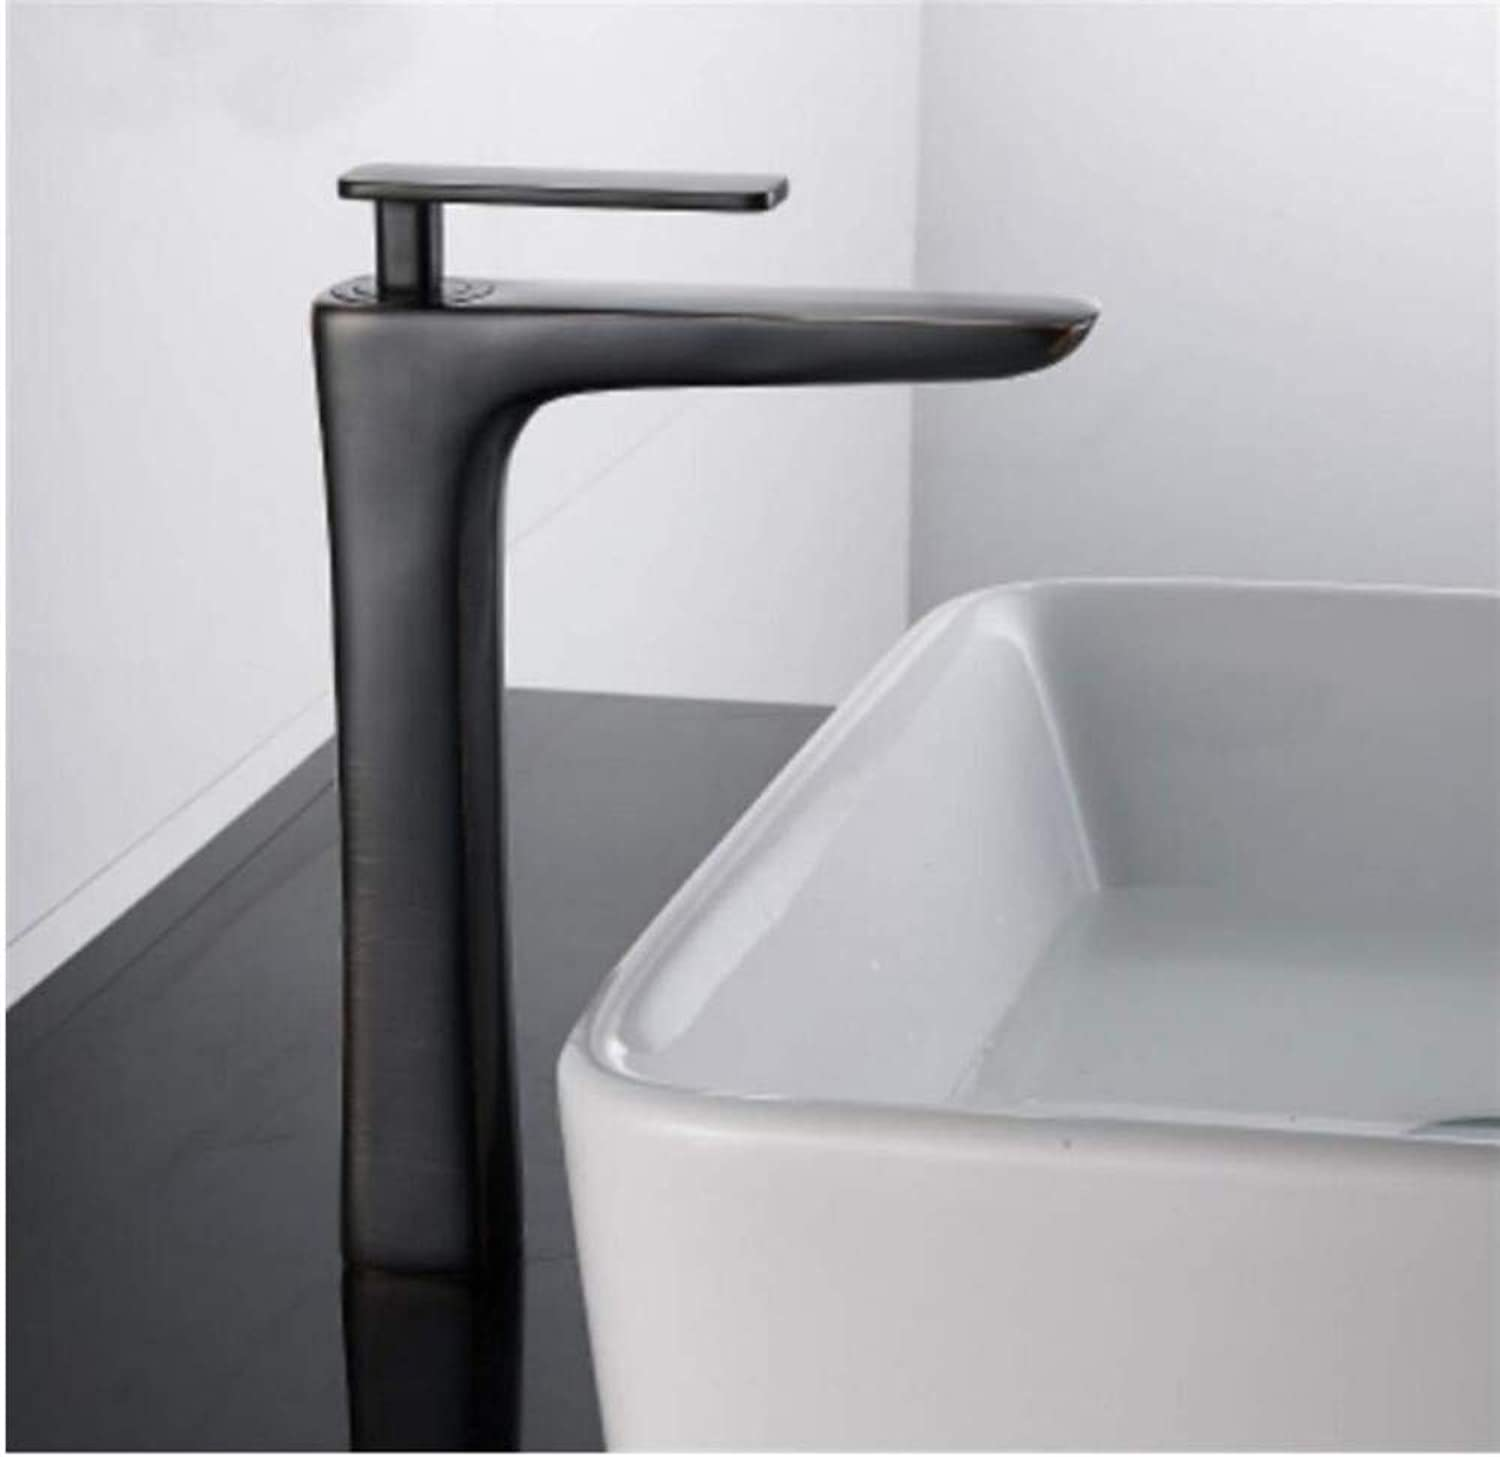 Modern Double Basin Sink Hot and Cold Water Faucettap Brand New Washbasin Hot Cold Mixer Deck Mounted